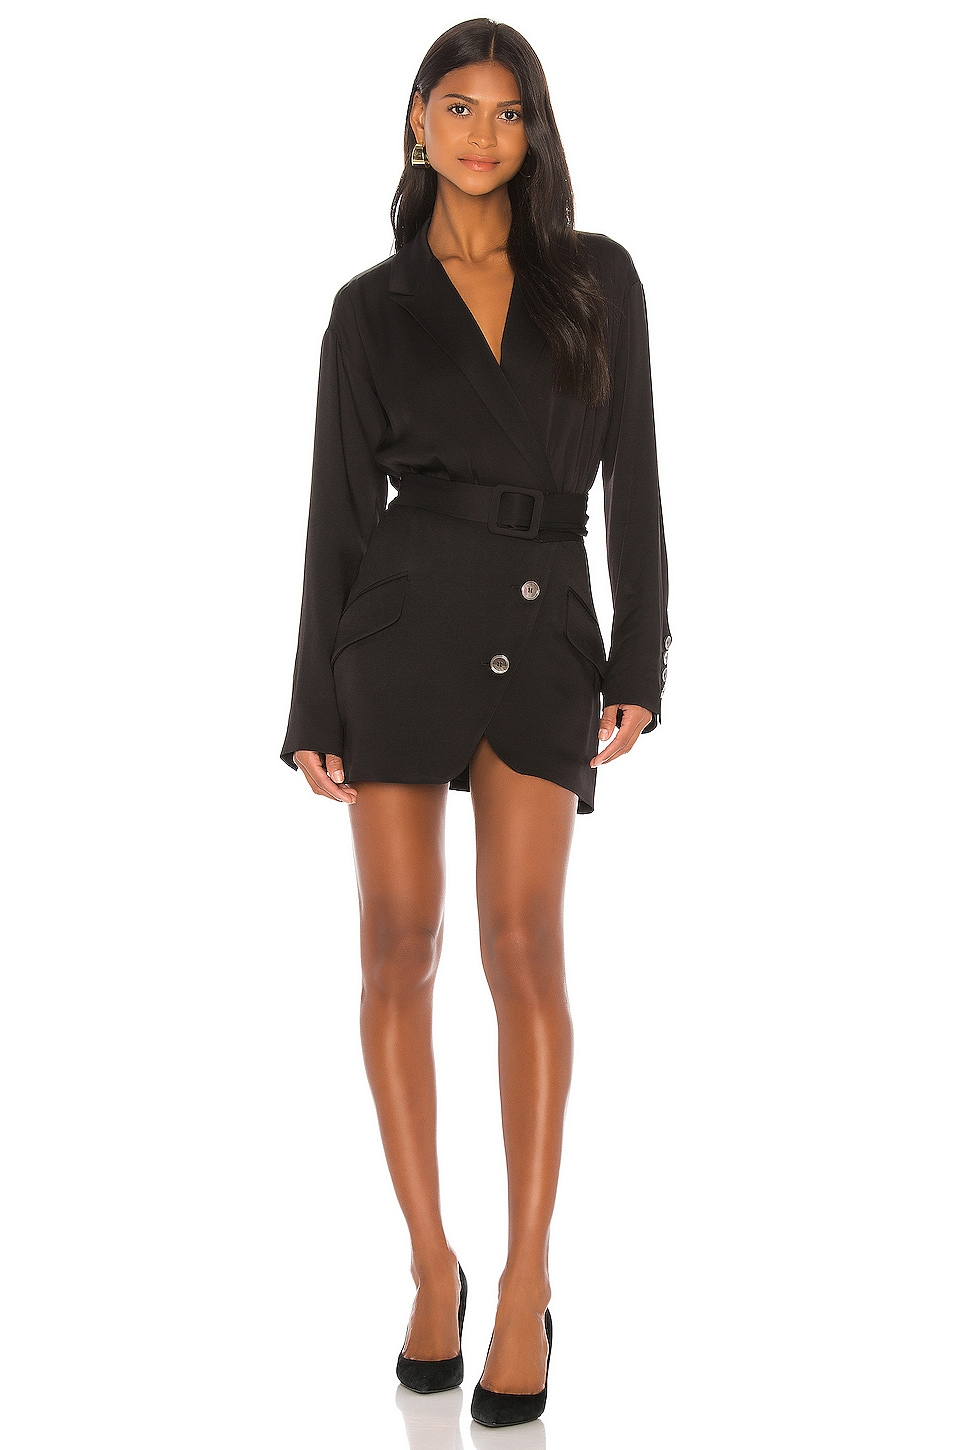 Marissa Webb Cyrus Suit Dress in Black